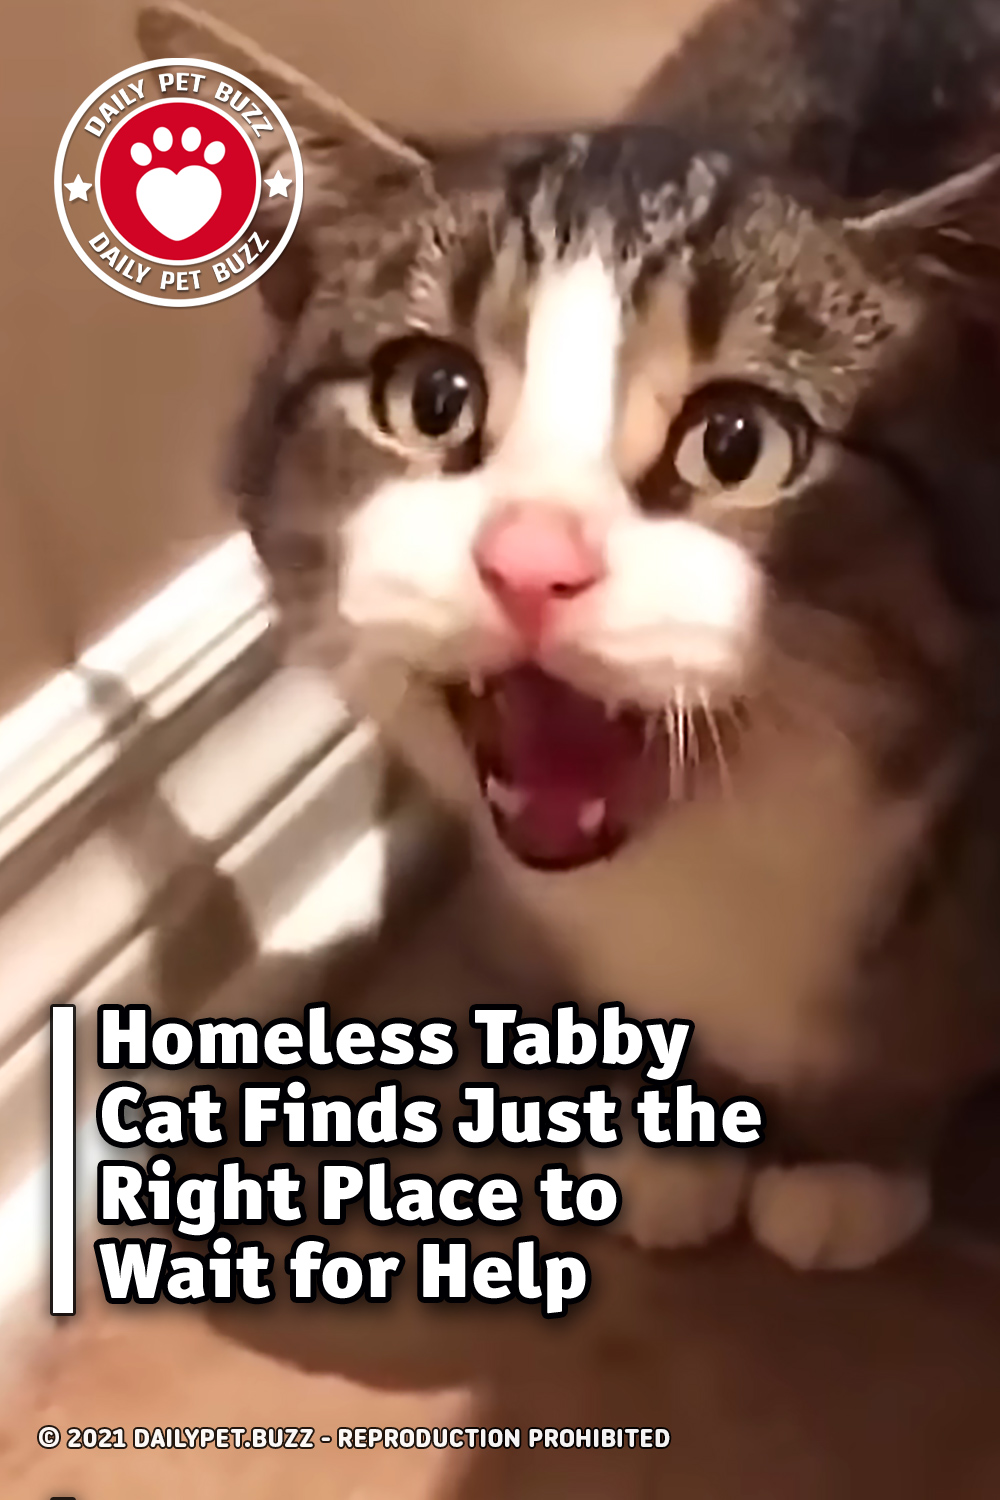 Homeless Tabby Cat Finds Just the Right Place to Wait for Help